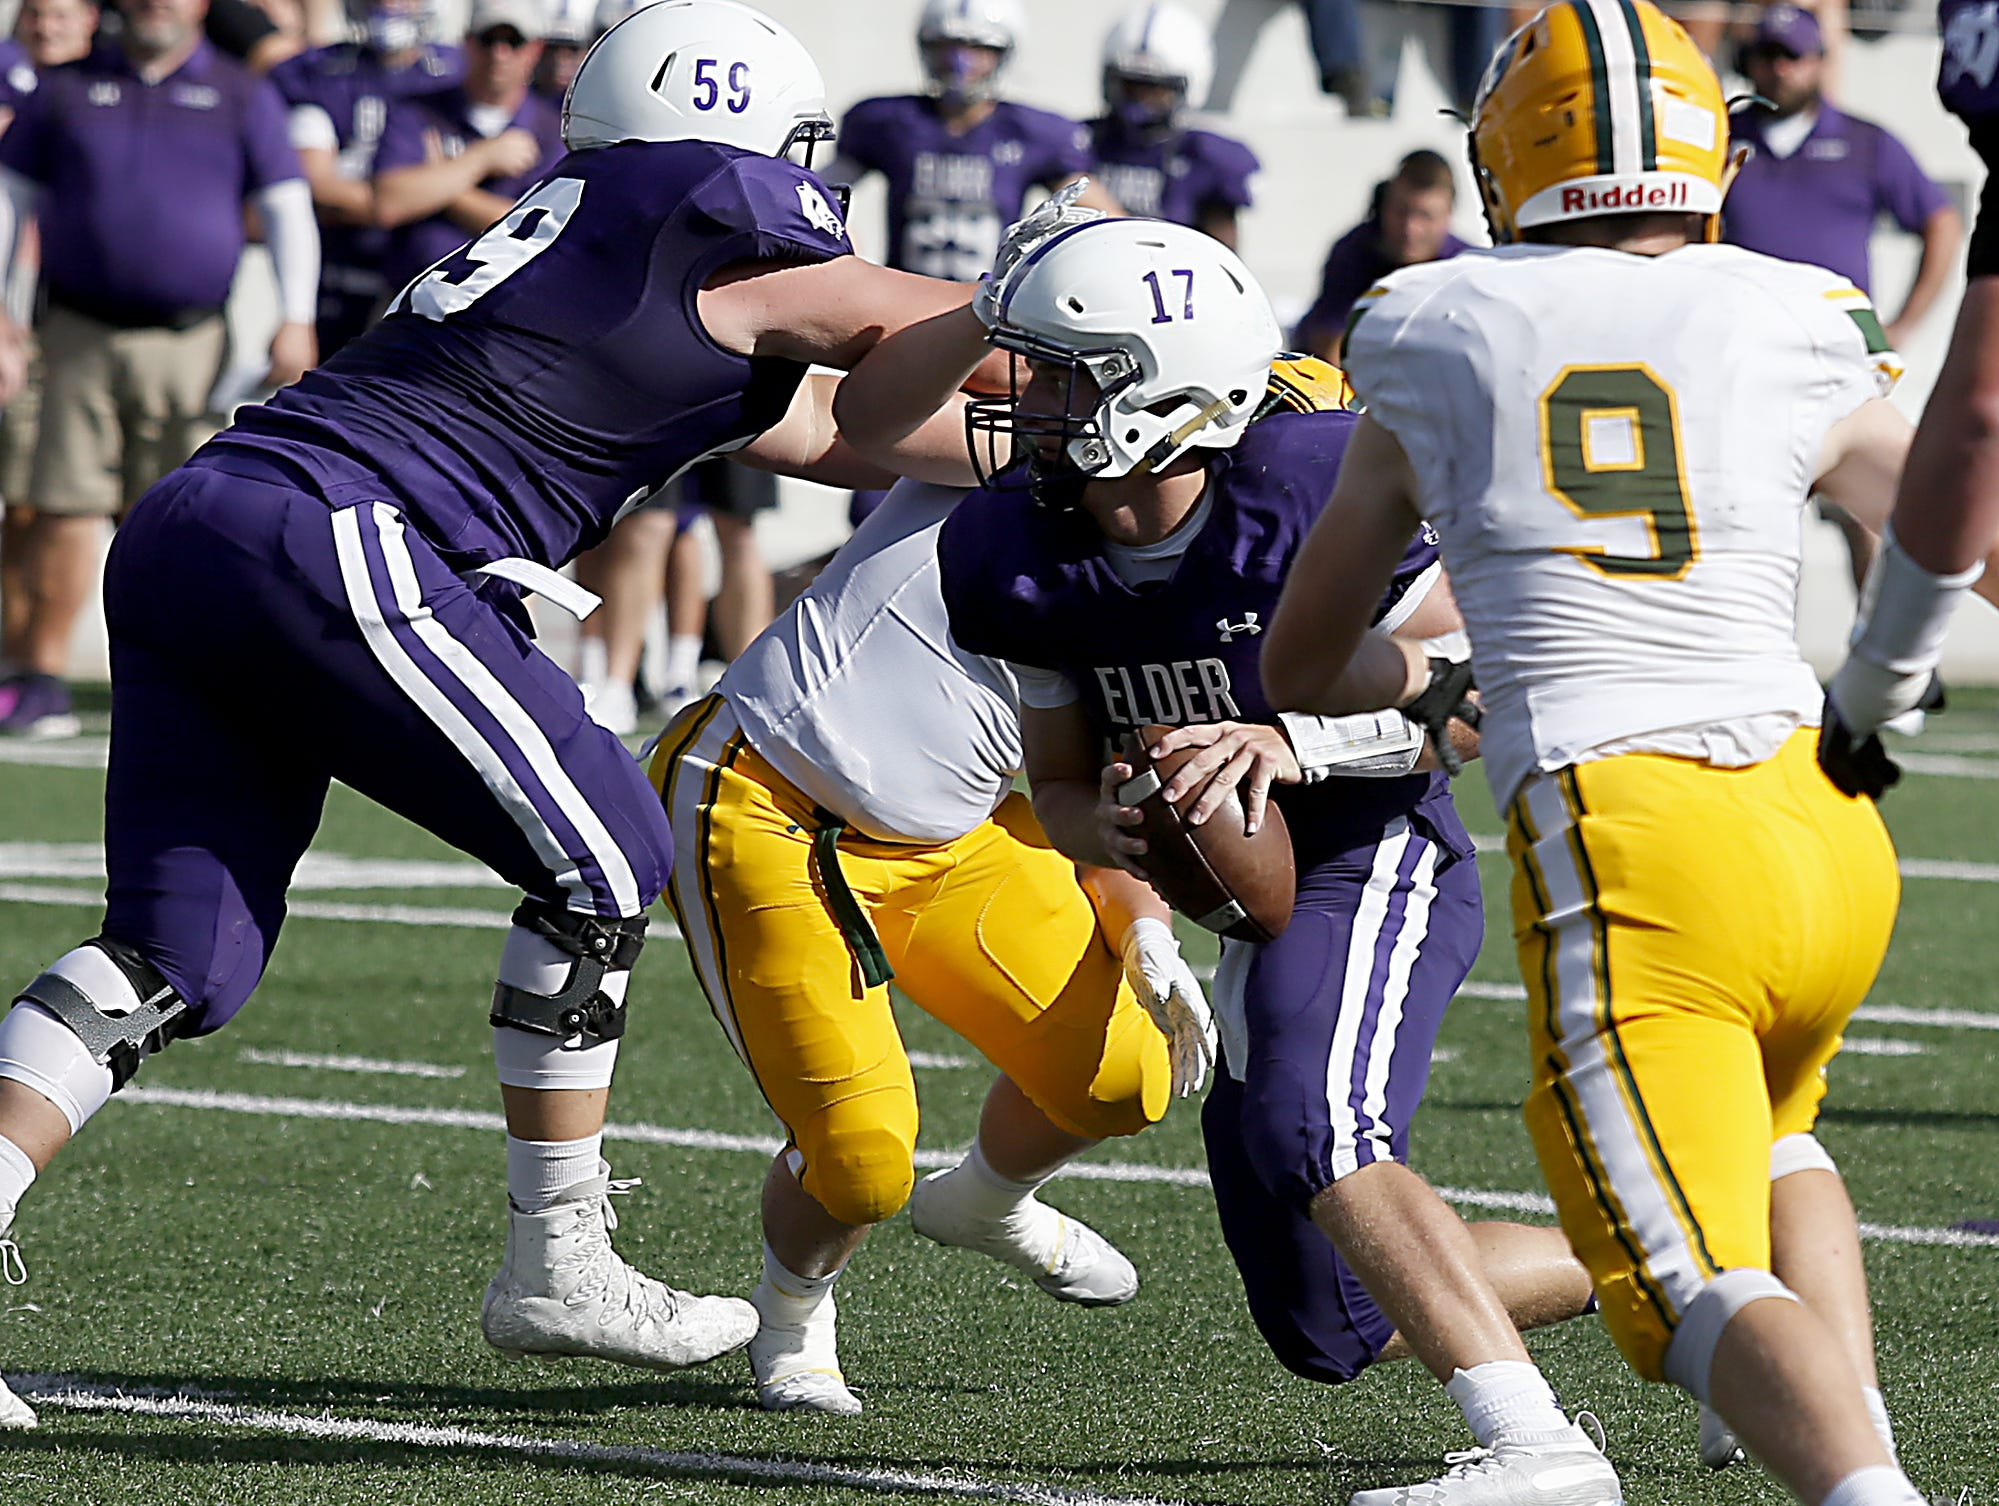 Elder quarterback Michael Bittner carries the ball against St. Edward during their game at The Pit in Cincinnati Saturday, Sept. 15, 2018.